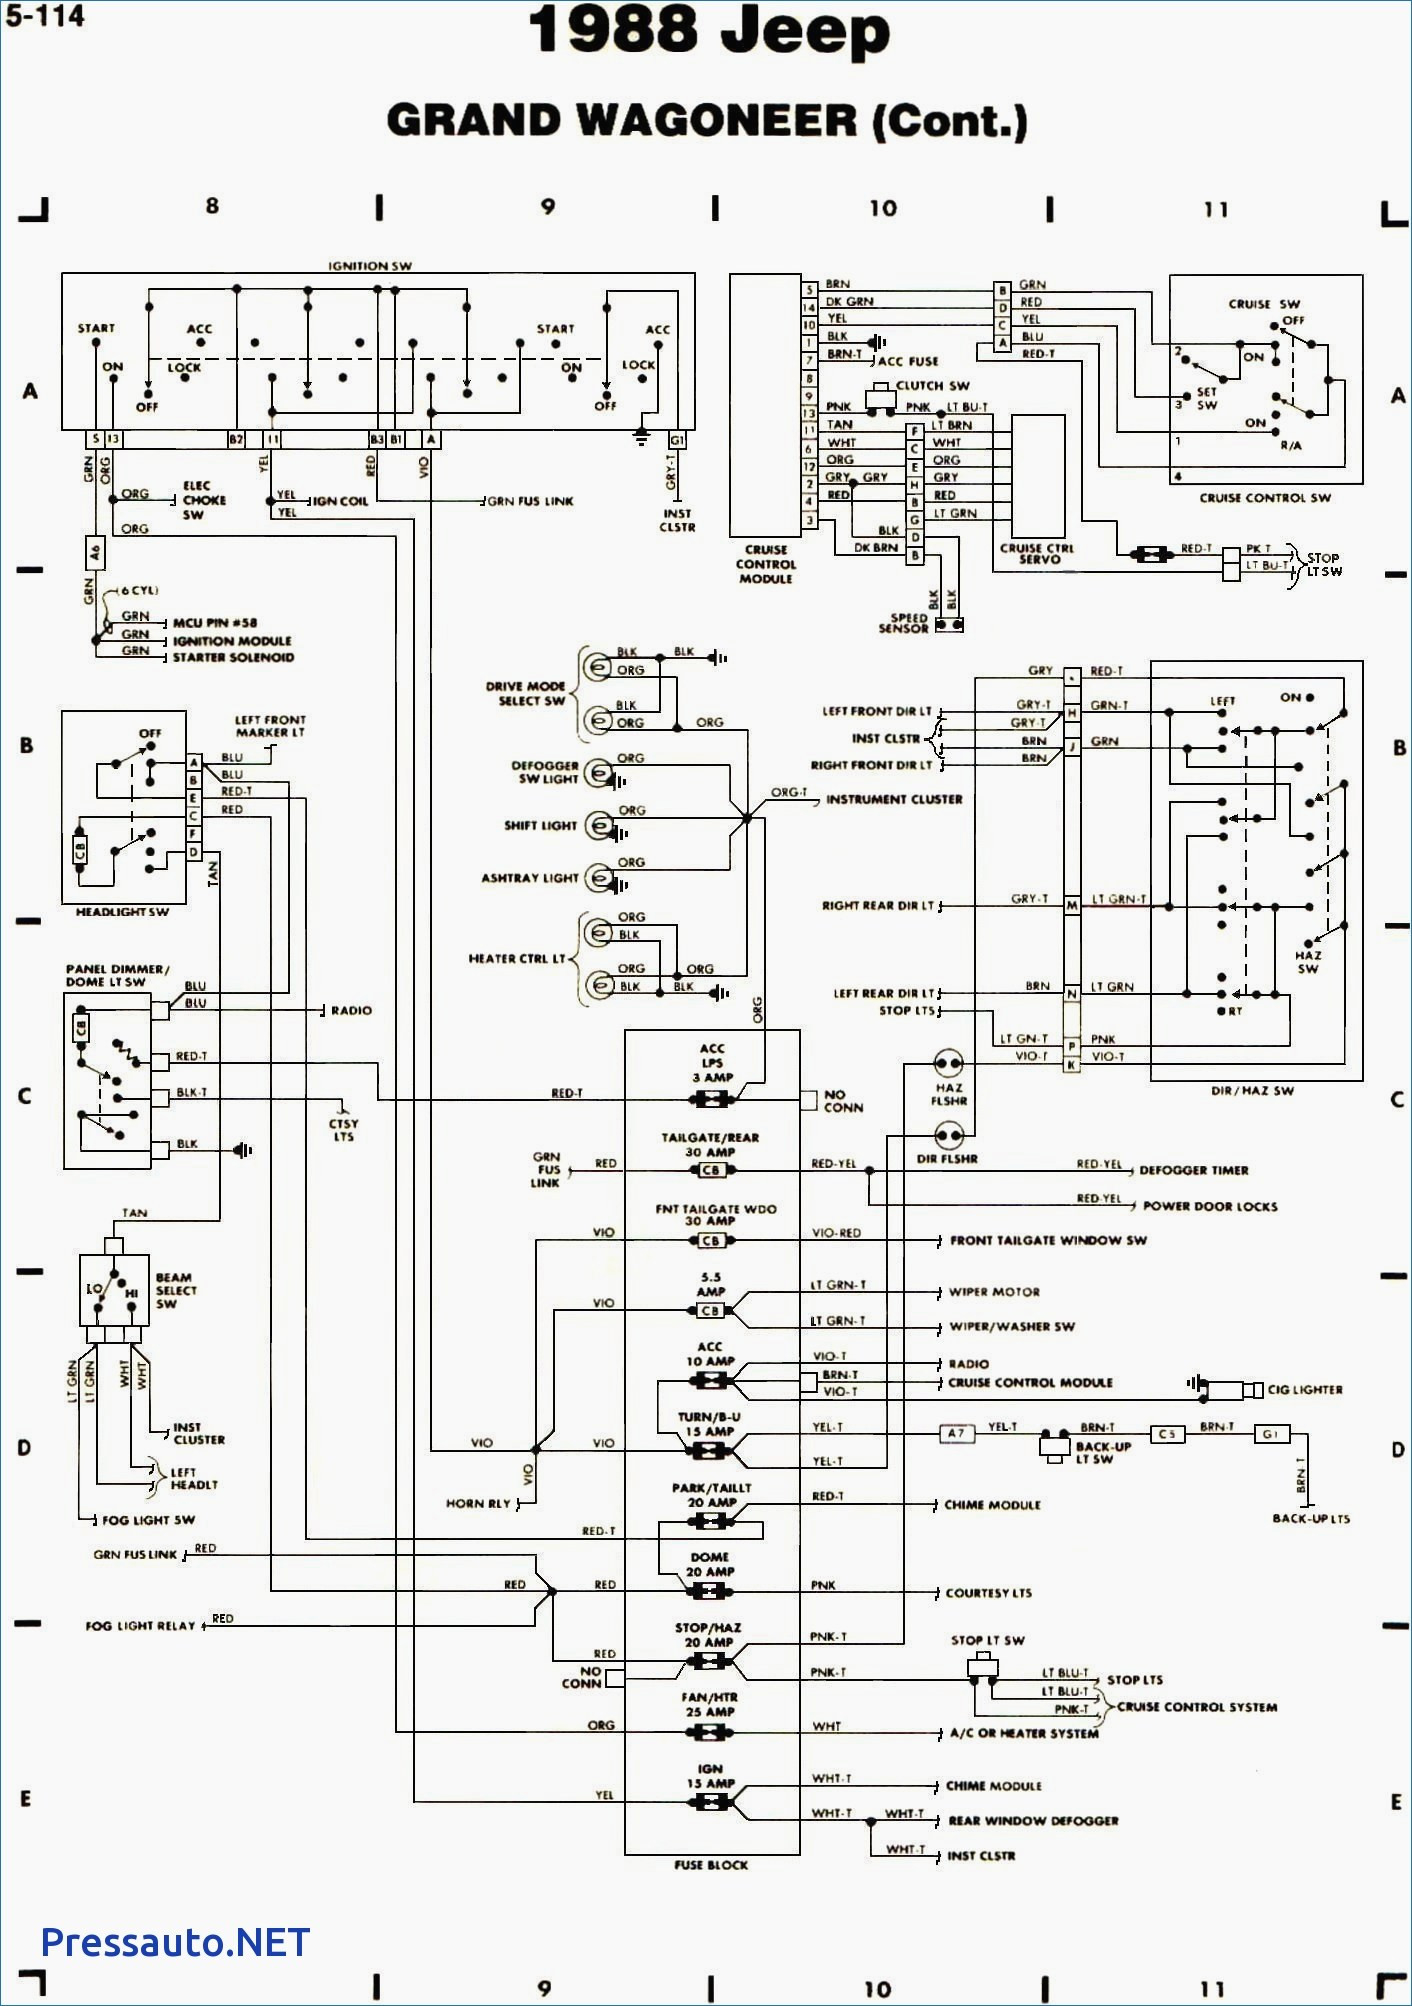 Freightliner M Wiring Diagram Freightliner Fl Fuse Box Diagram Wire Center U Rh Freightliner M F on 2007 freightliner columbia wiring diagrams